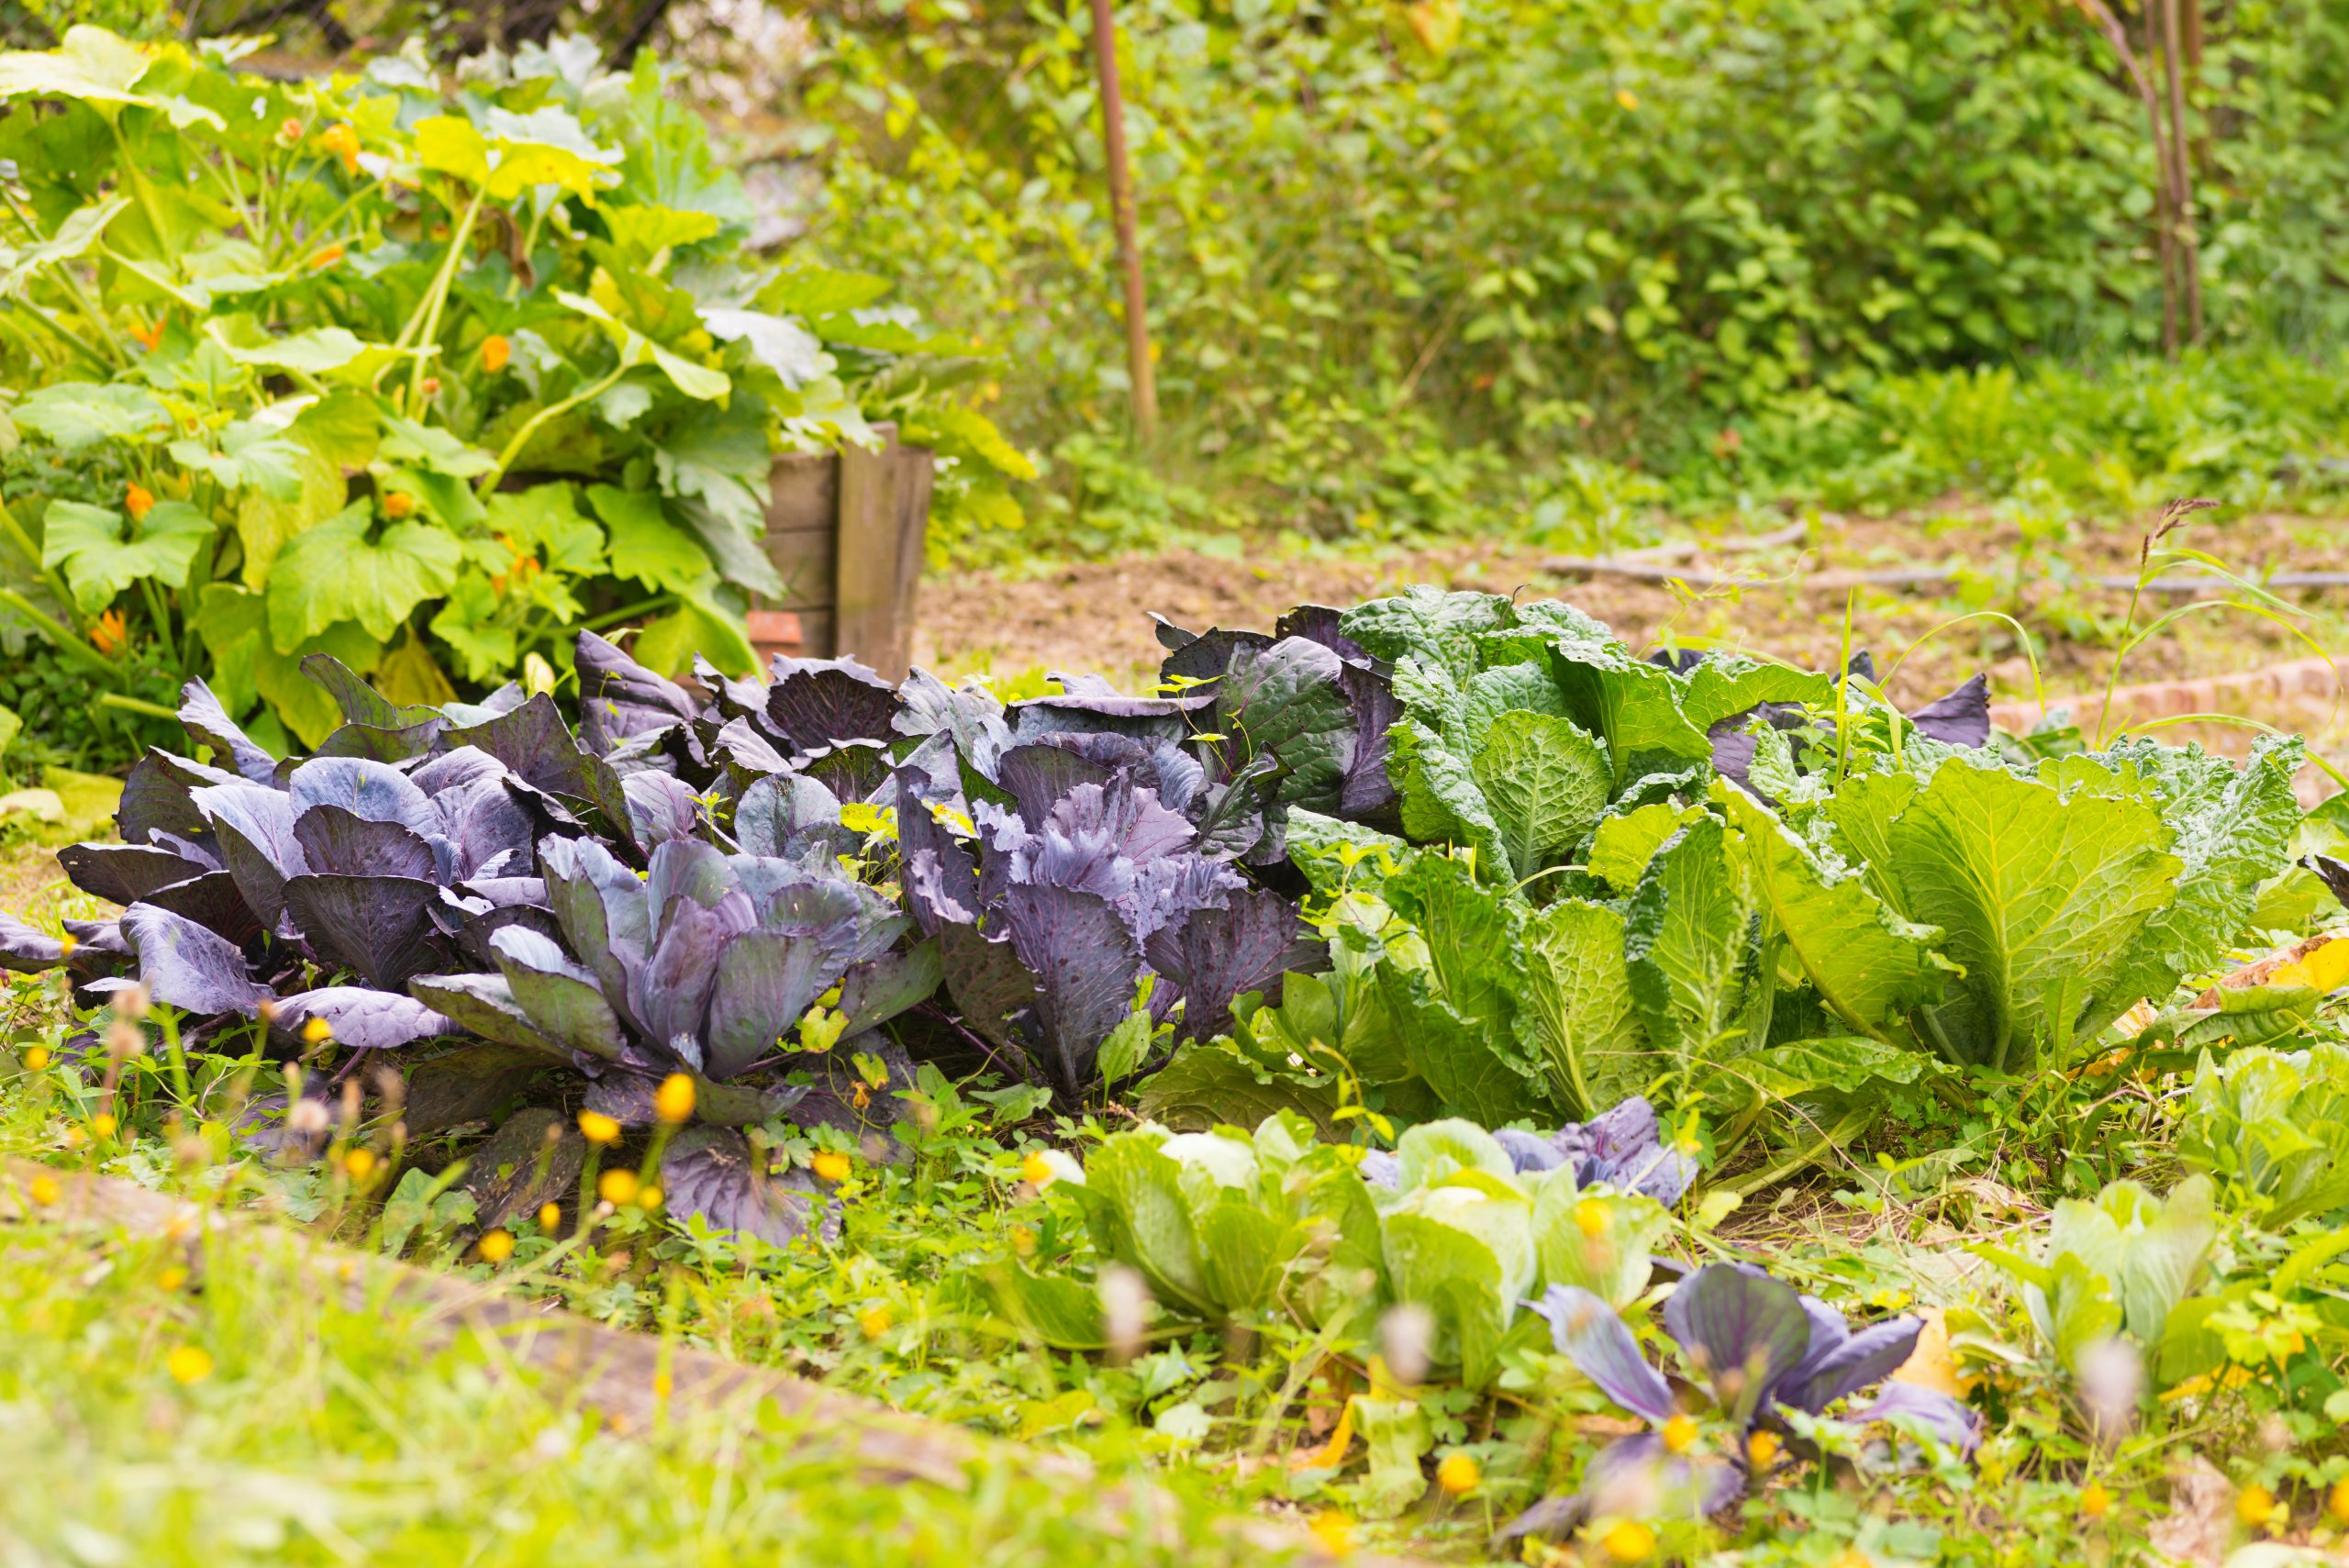 Rows of brassica plants